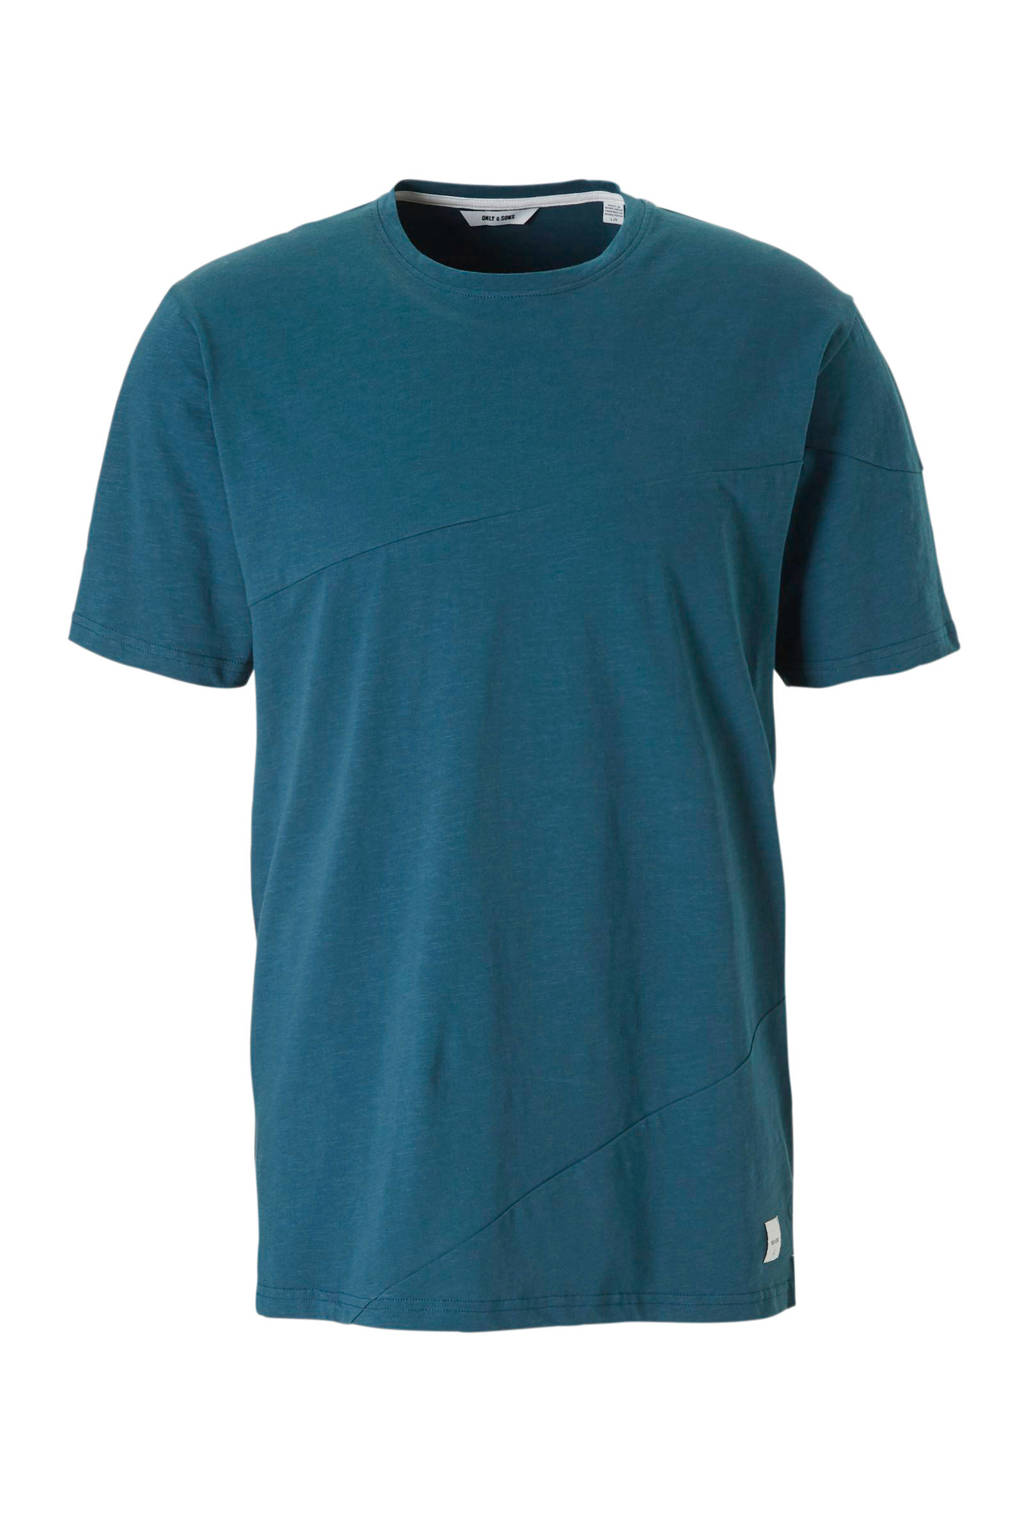 Only & Sons t-shirt, Blauw